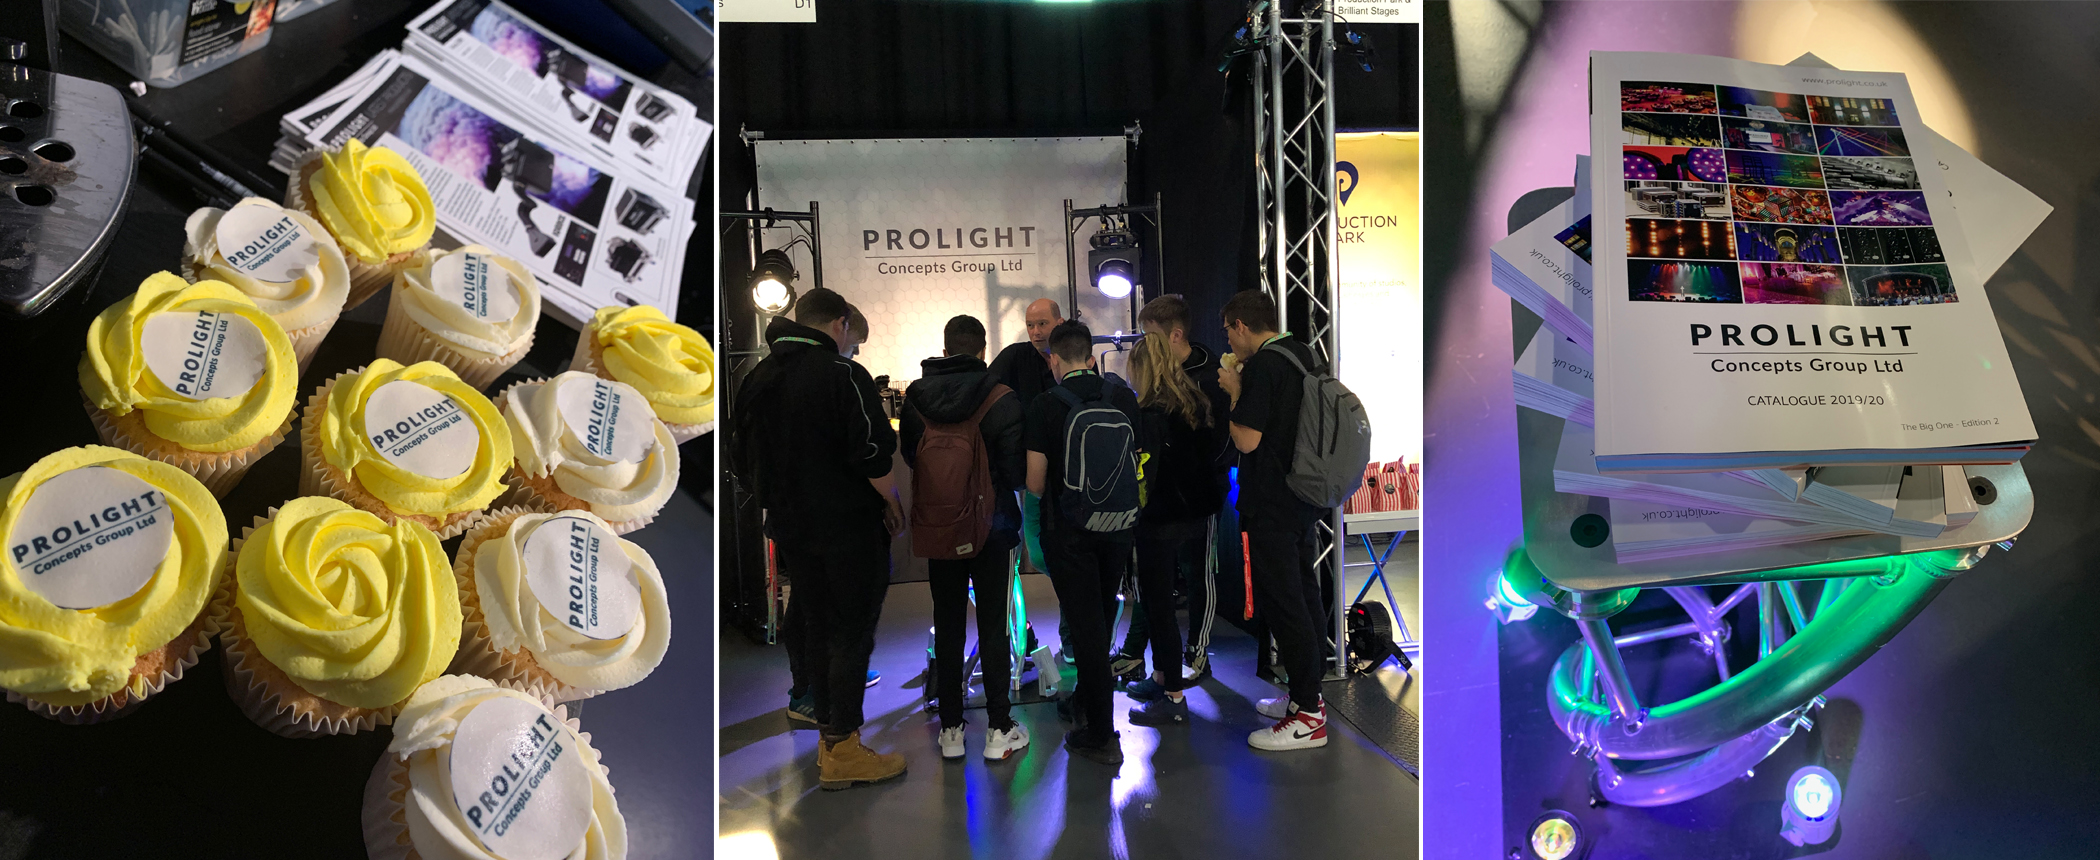 The Prolight Concepts Group Stand at Production Futures